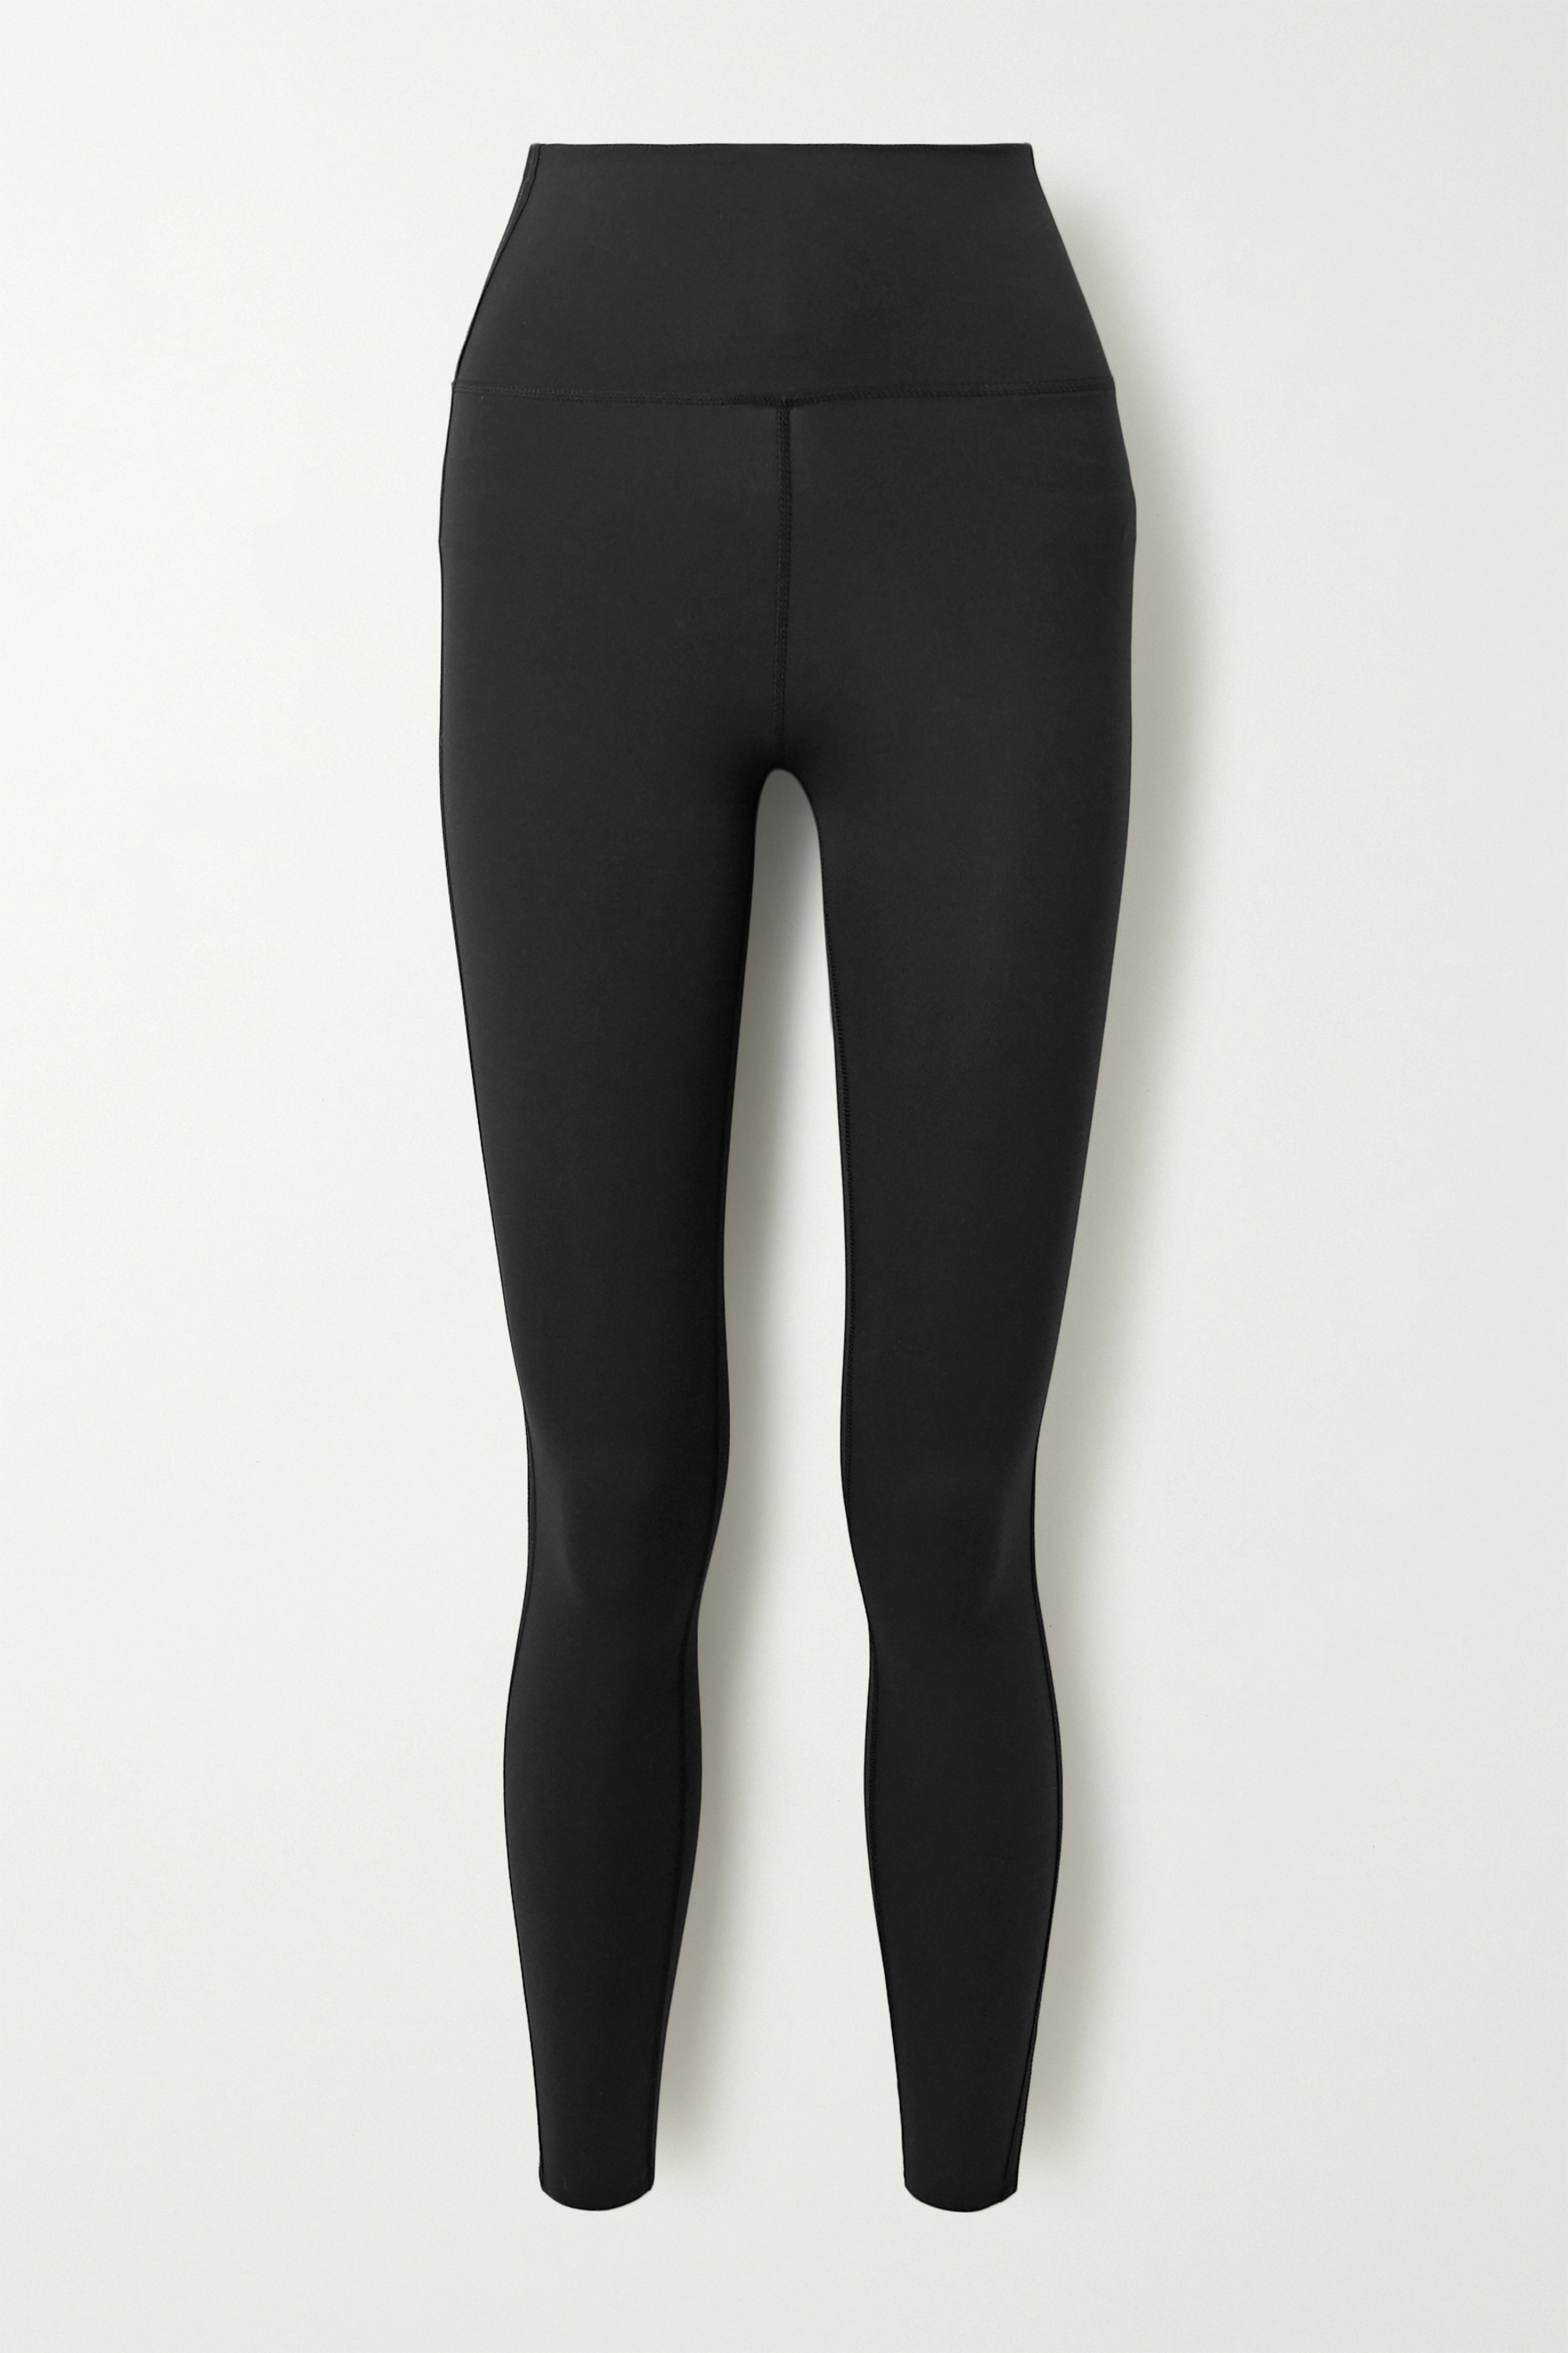 Black Yoga Luxe Dri Fit Stretch Leggings Nike Net A Porter